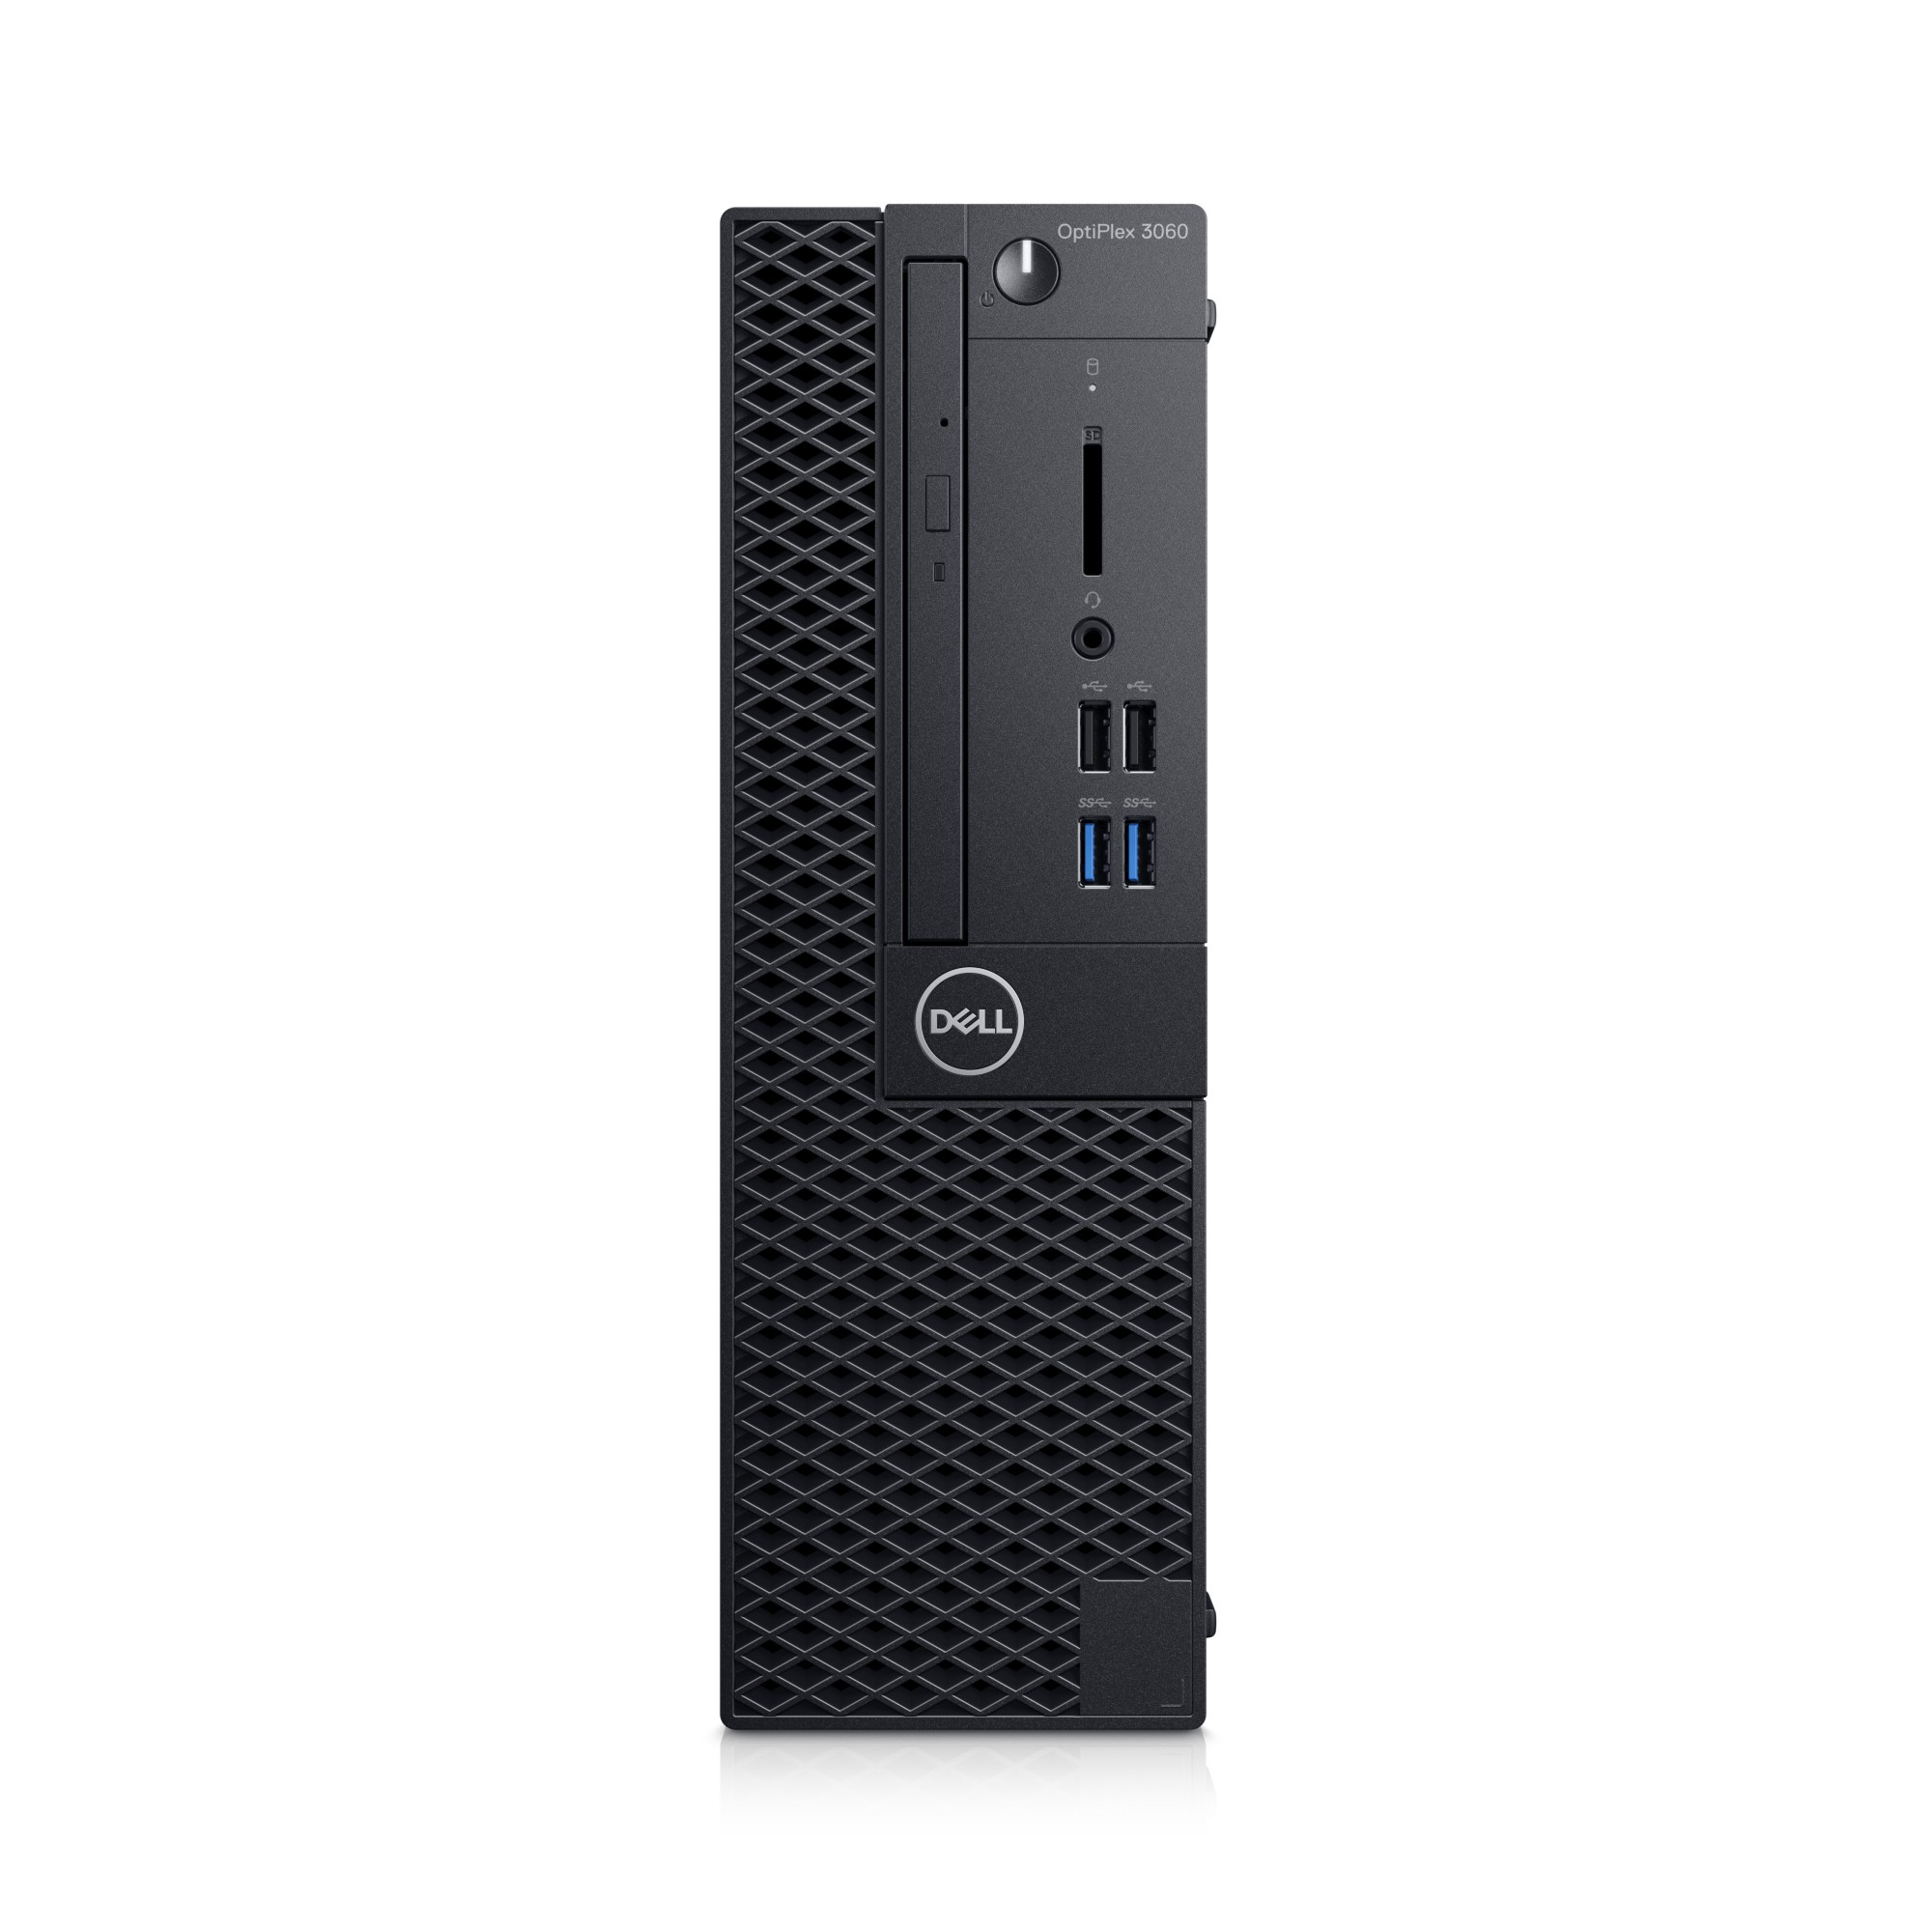 DELL OPTIPLEX 3060 3.6GHZ I3-8100 SFF BLACK PC